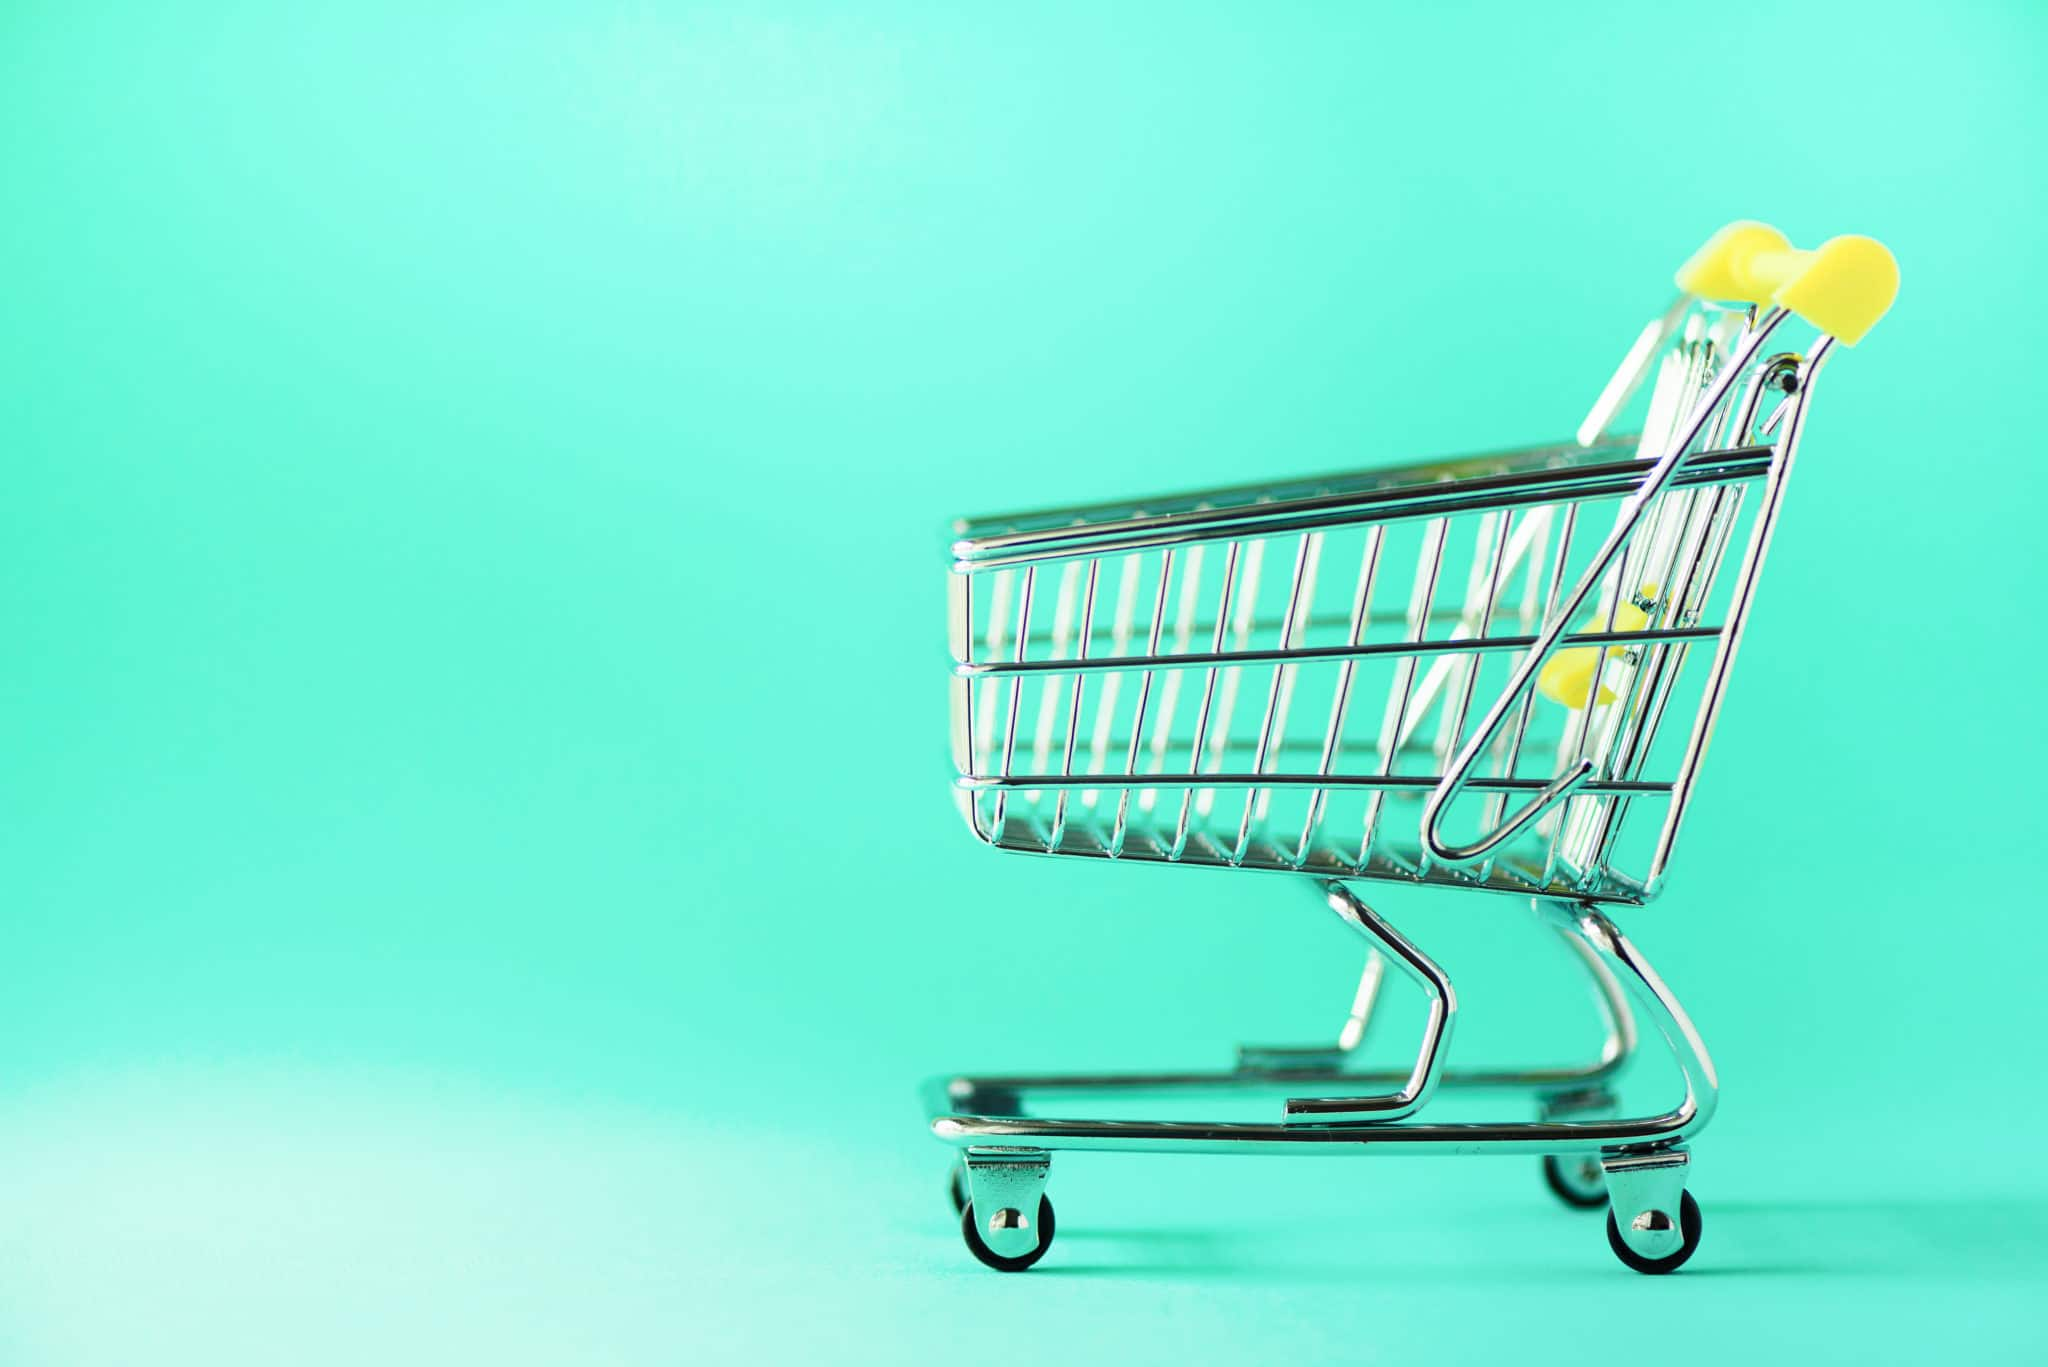 Image of a shopping cart with a turquoise background.